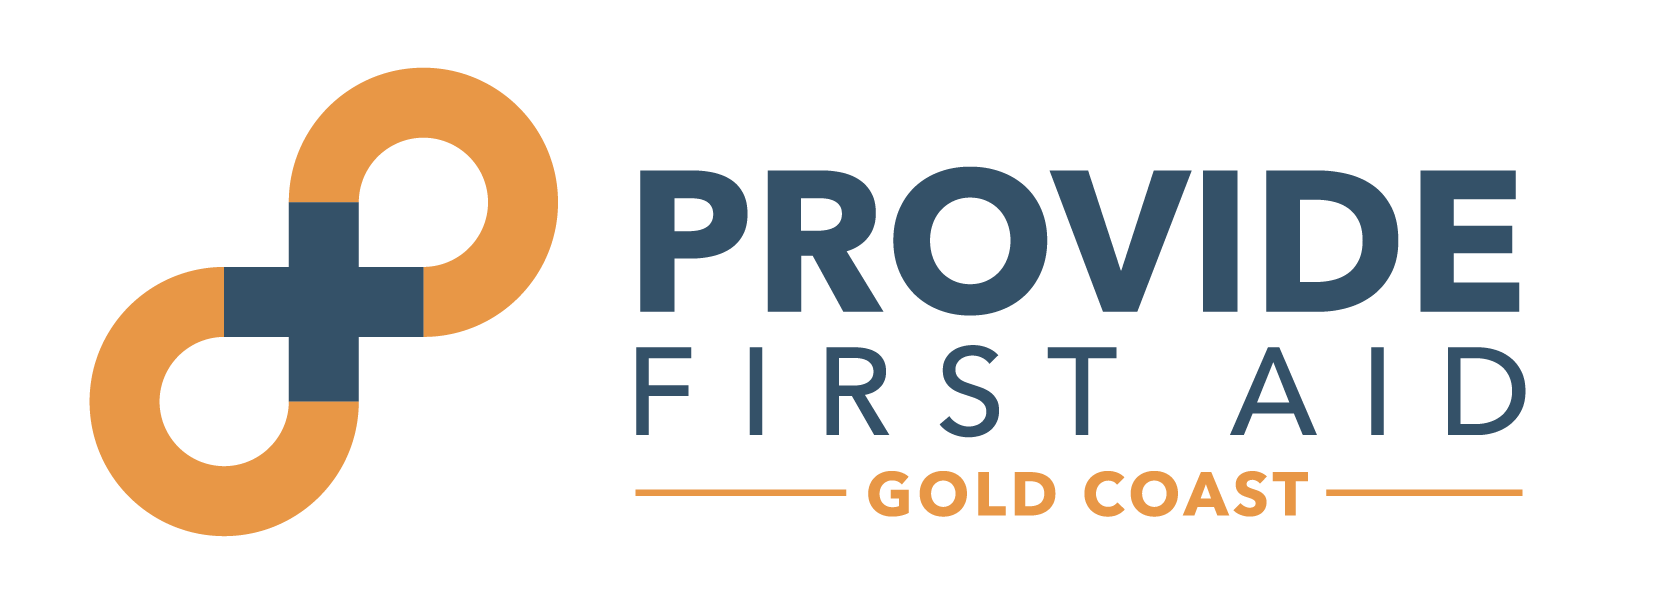 Provide First Aid Gold Coast